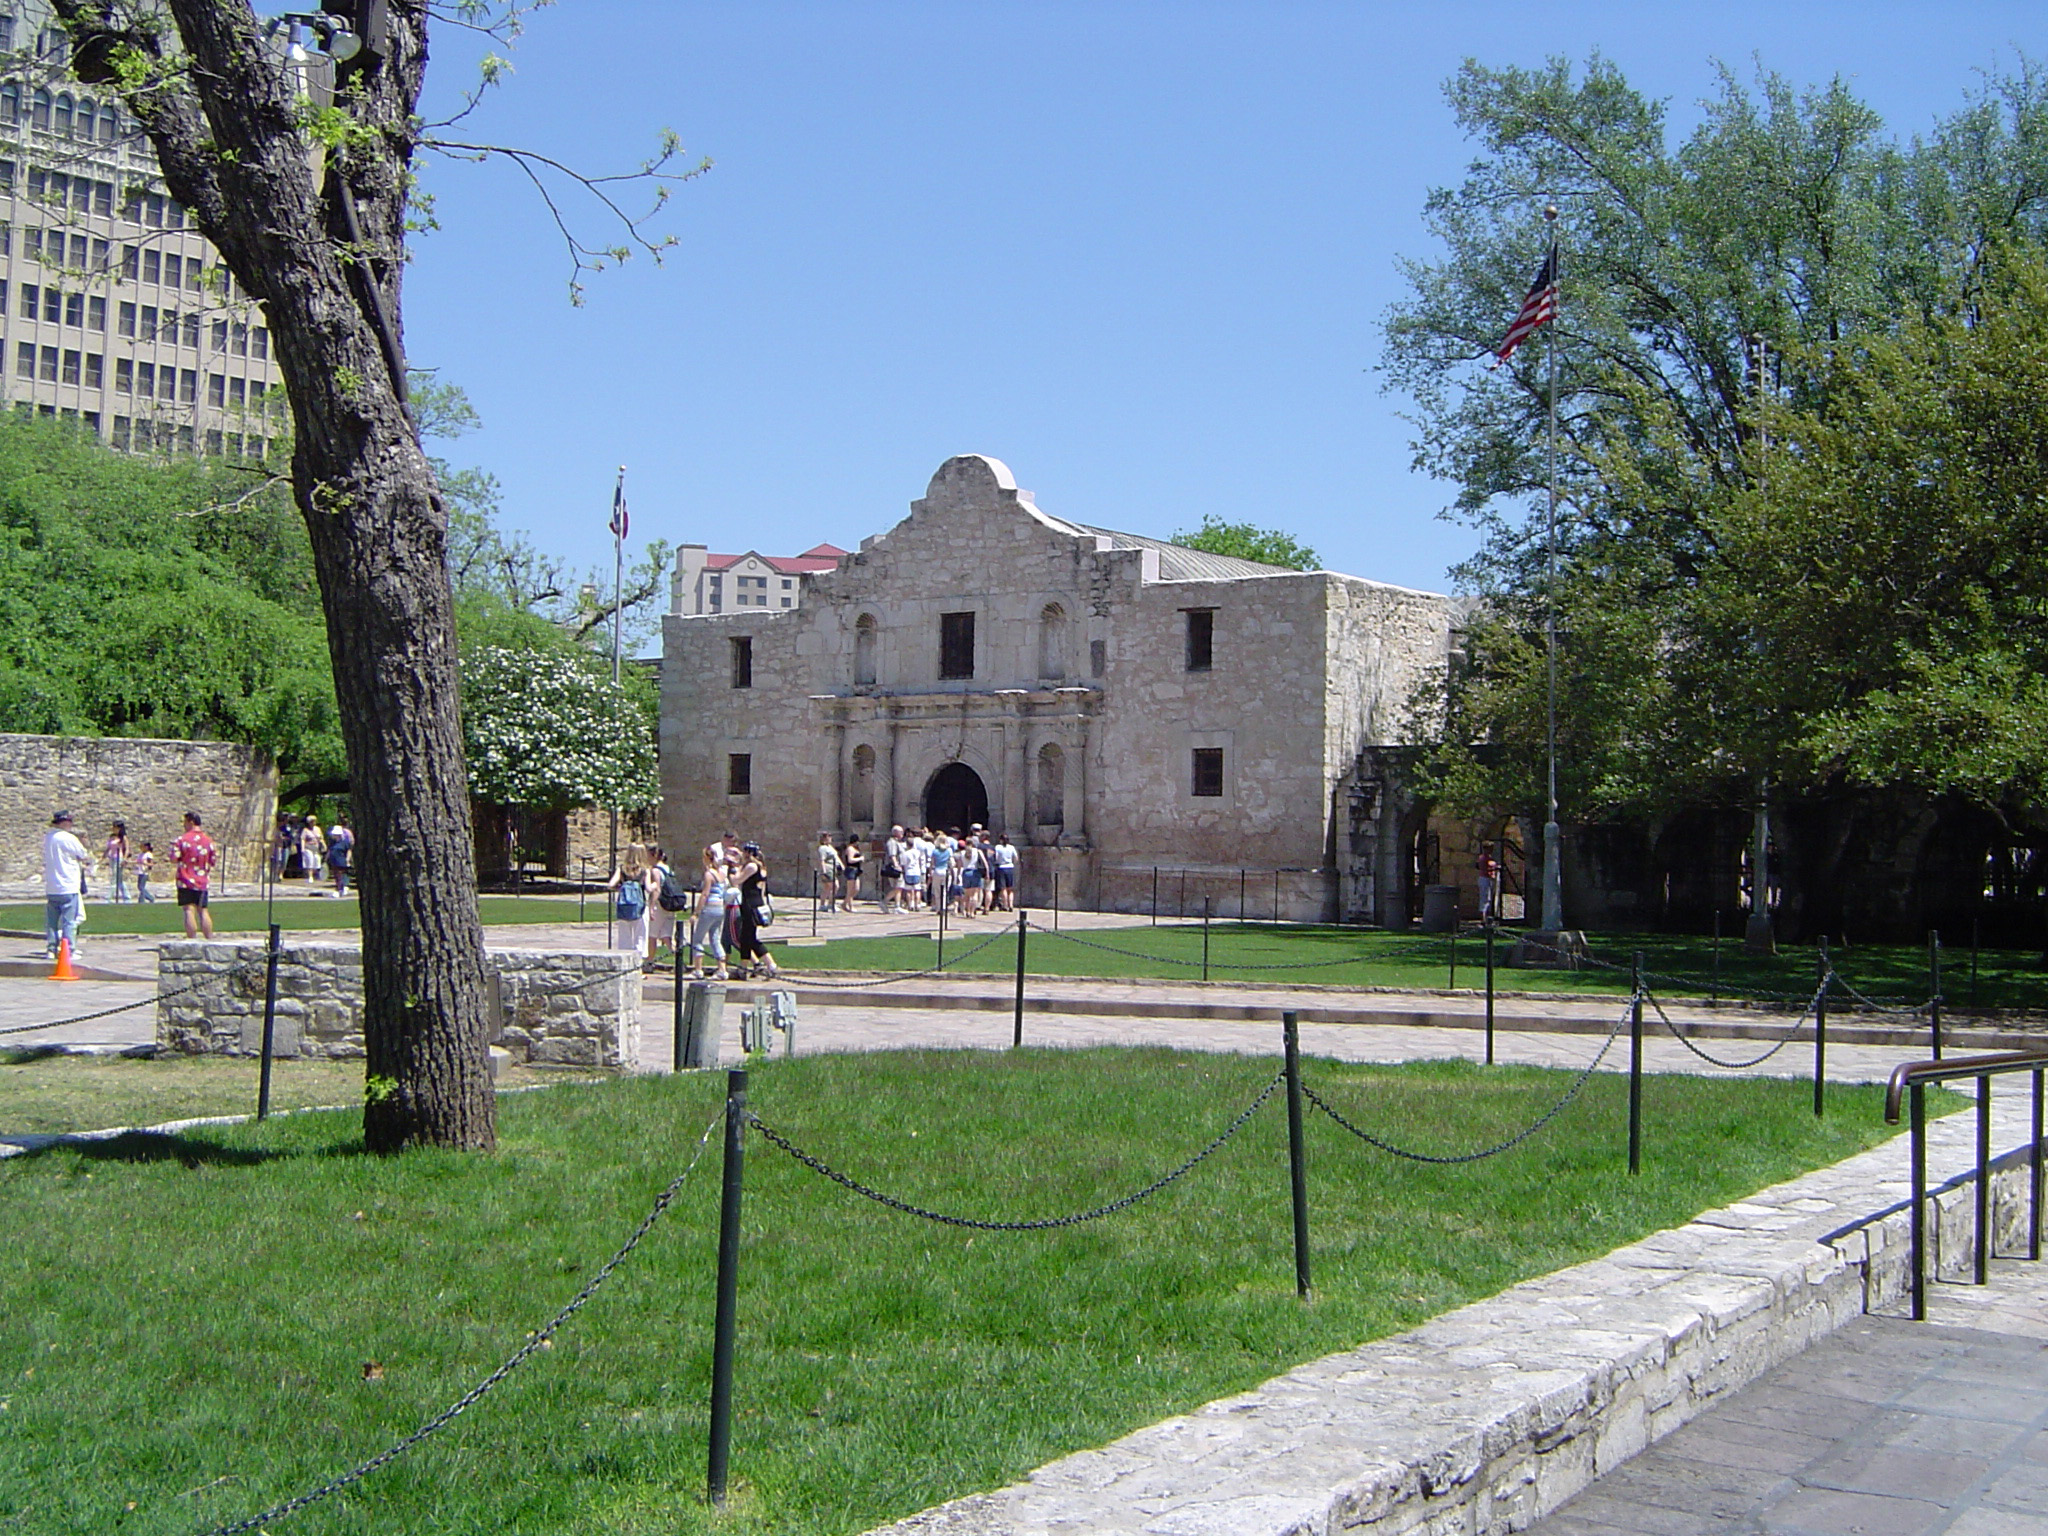 Grassy Landscape, Tall Trees and Tourists in Front Famous Historic Alamo Building. Isolated on Light Blue Sky Background.